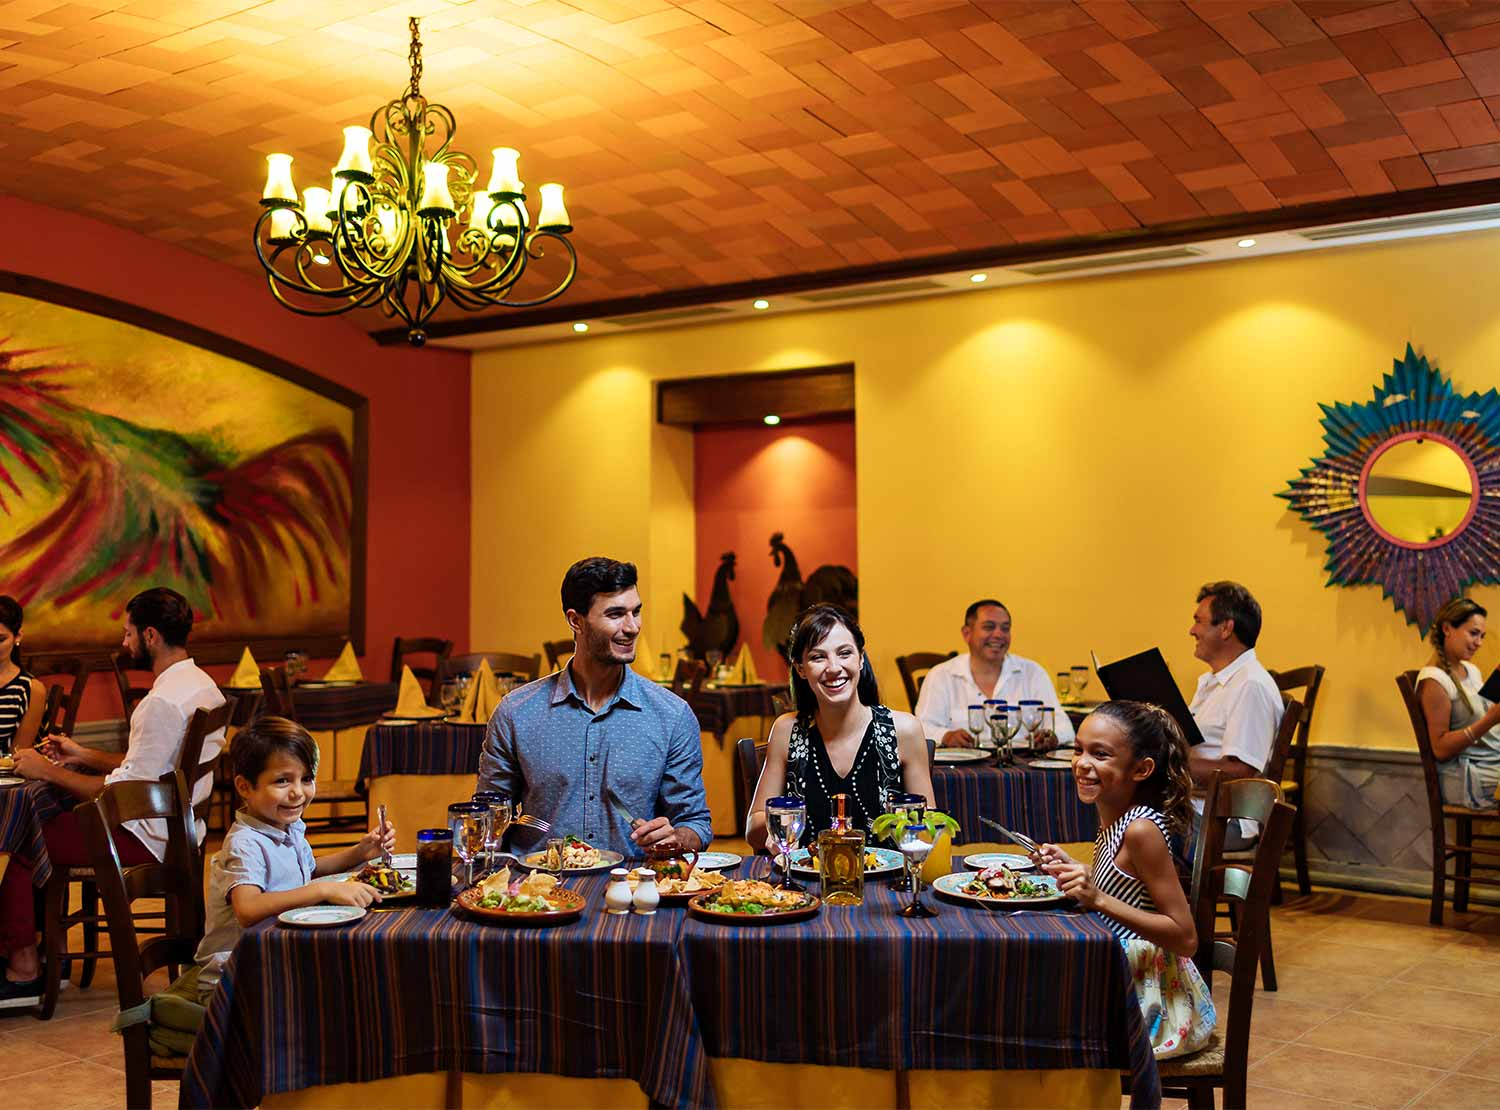 Restaurante La Hacienda Occidental at Xcaret Destination